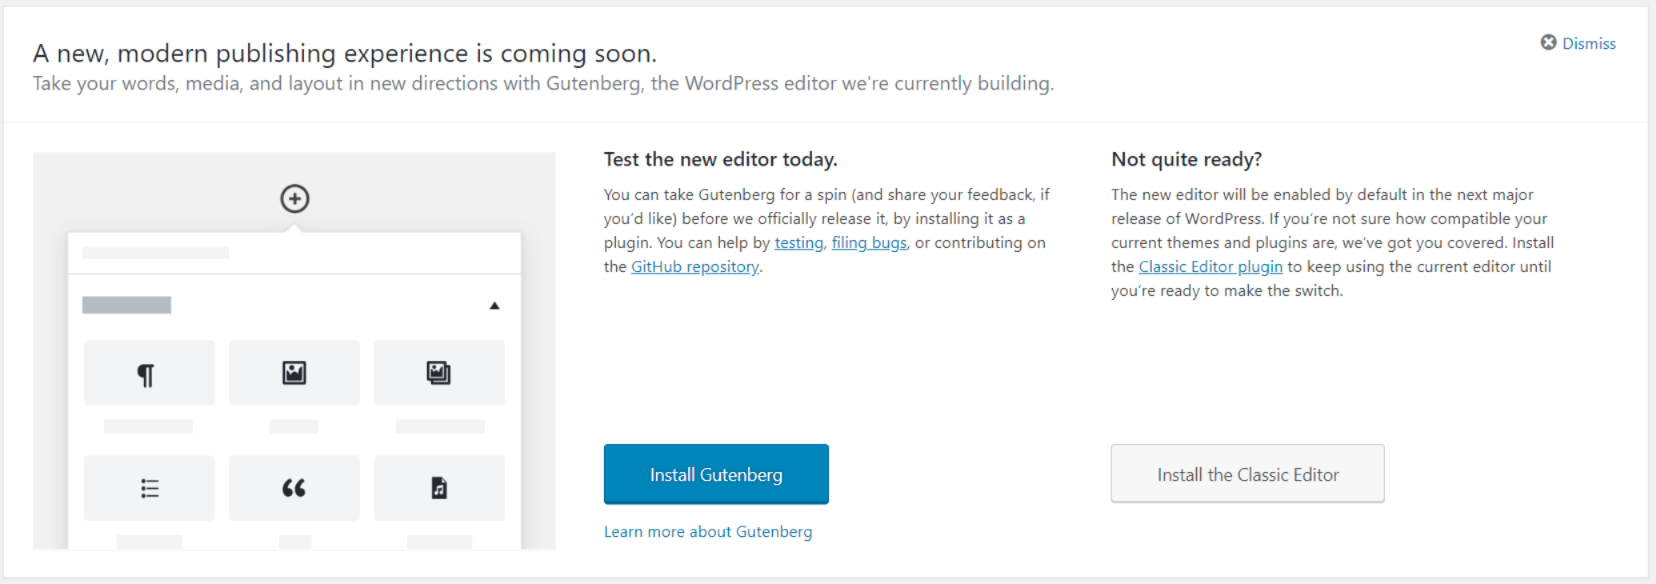 WordPress Gutenberg: A new, modern publishing experience is coming soon.